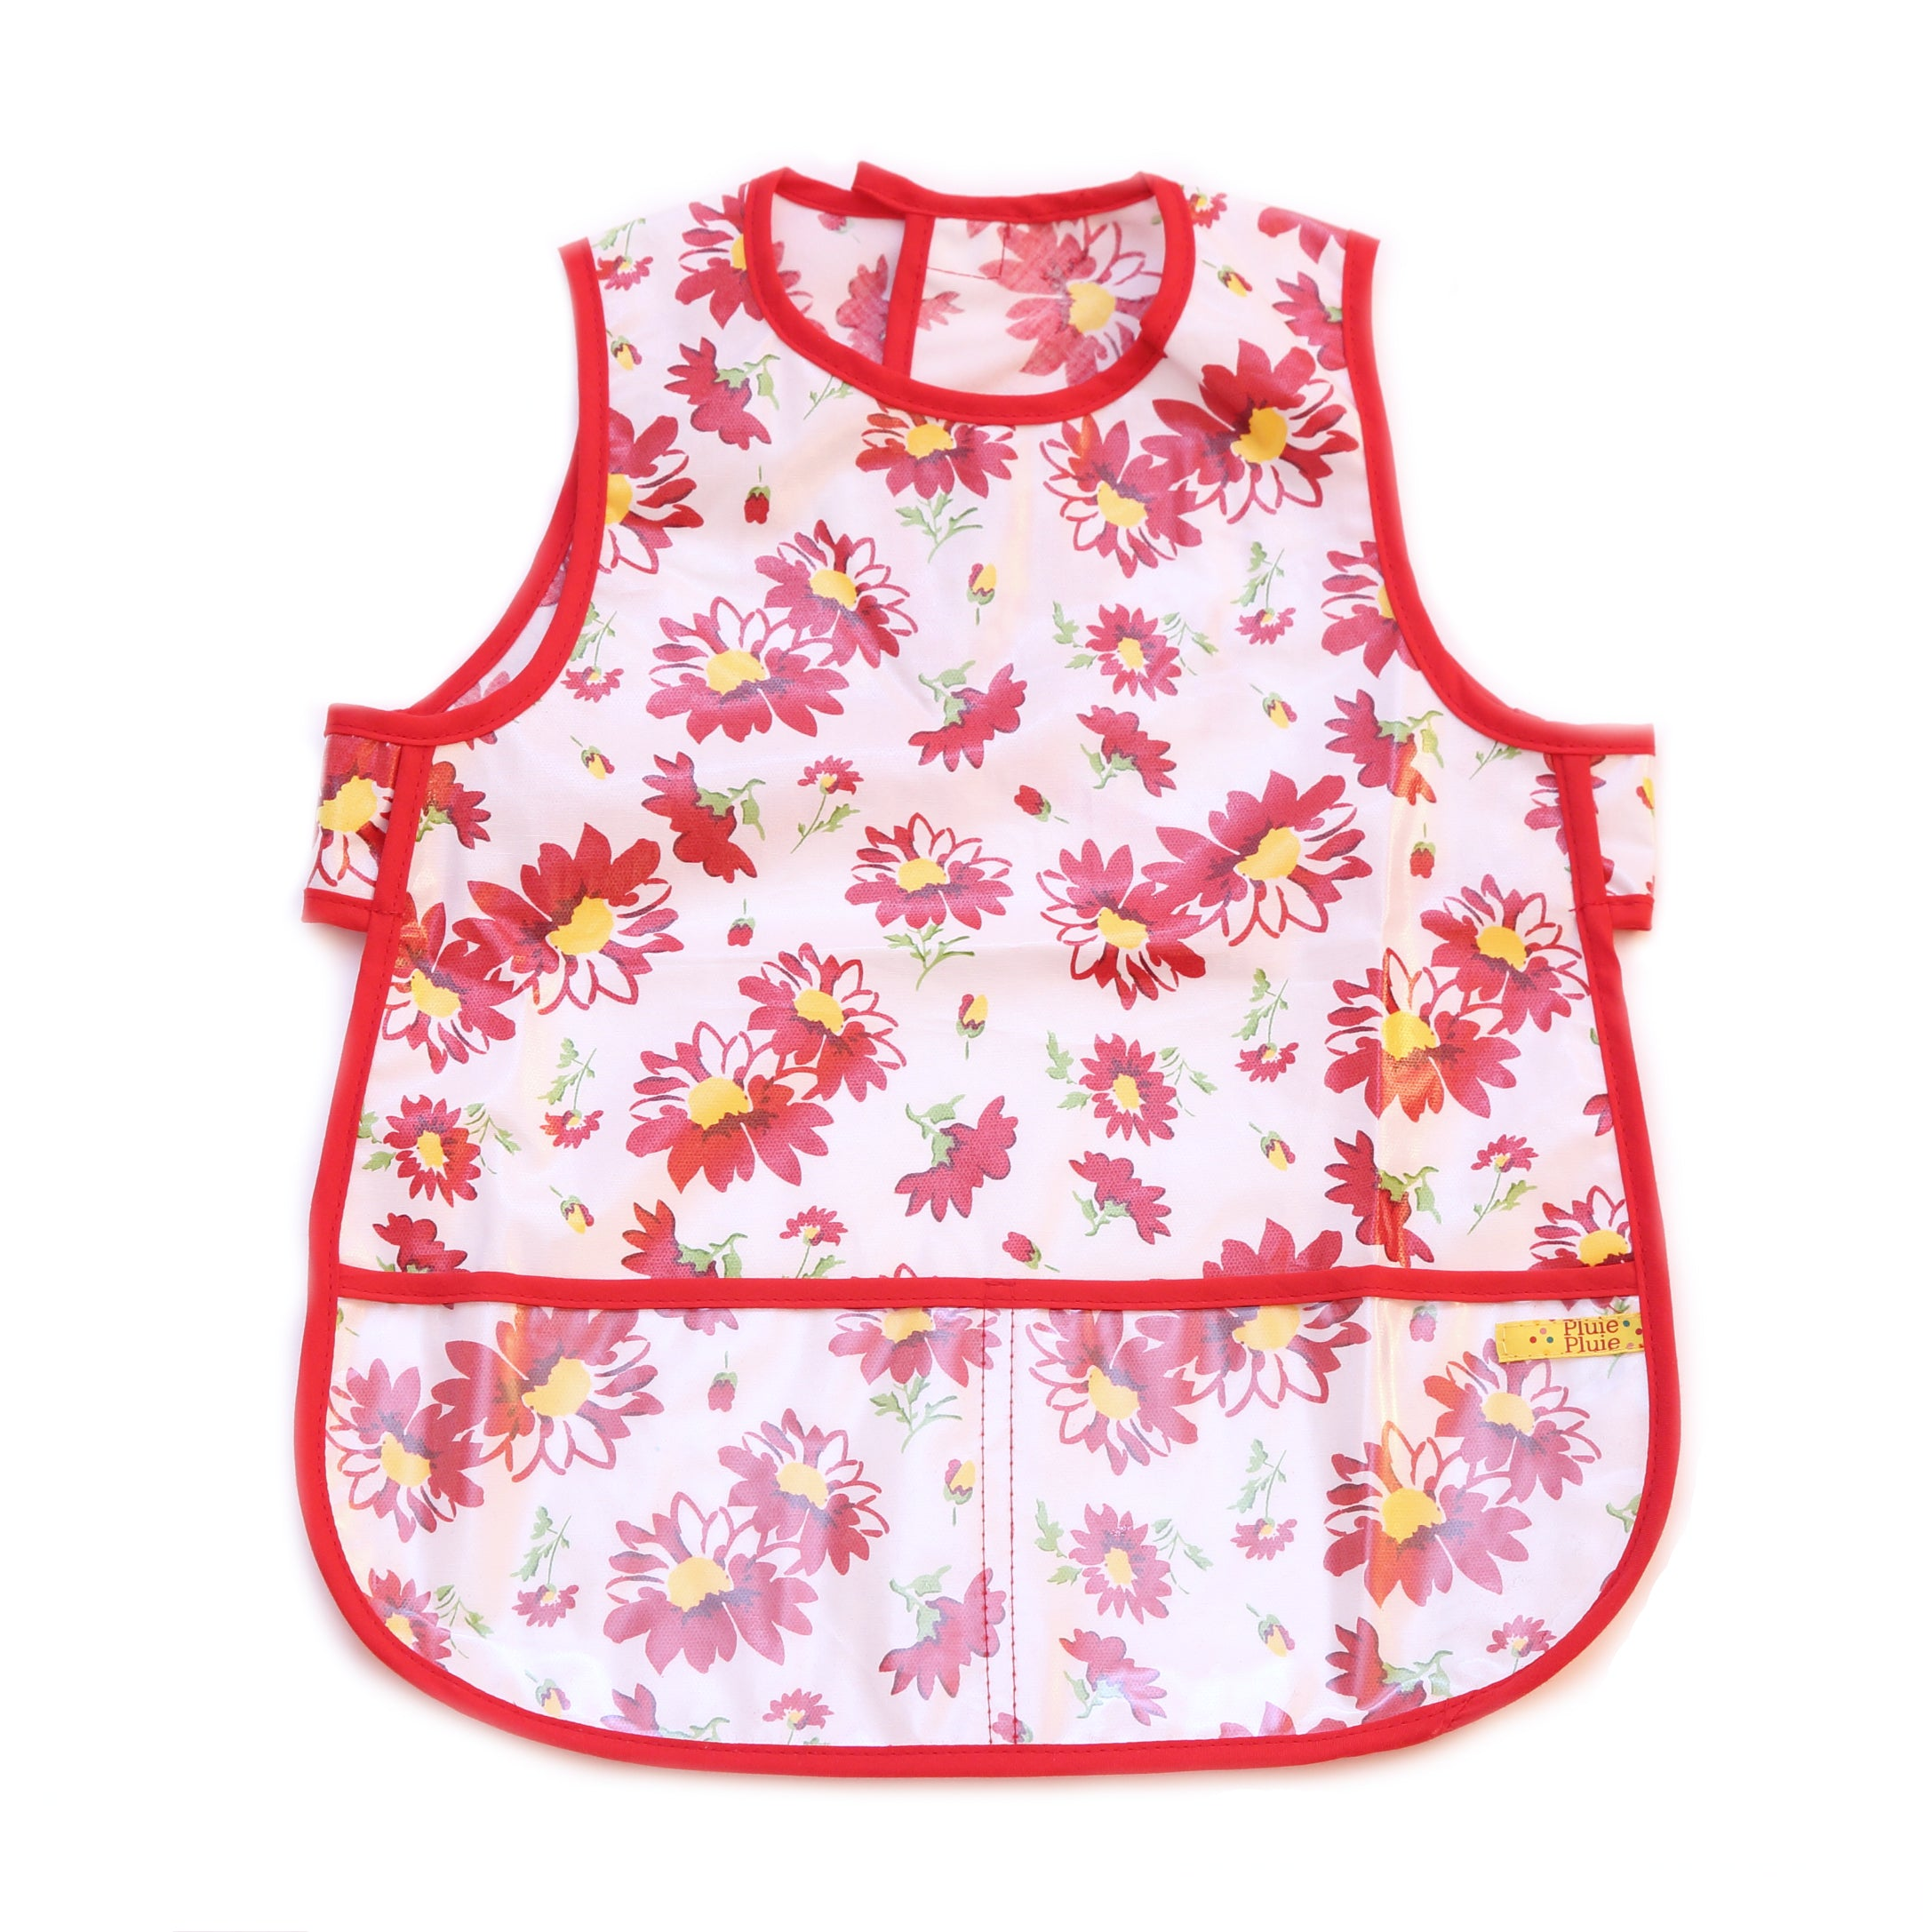 Pluie Pluie Girls Red Flower Waterproof Bib